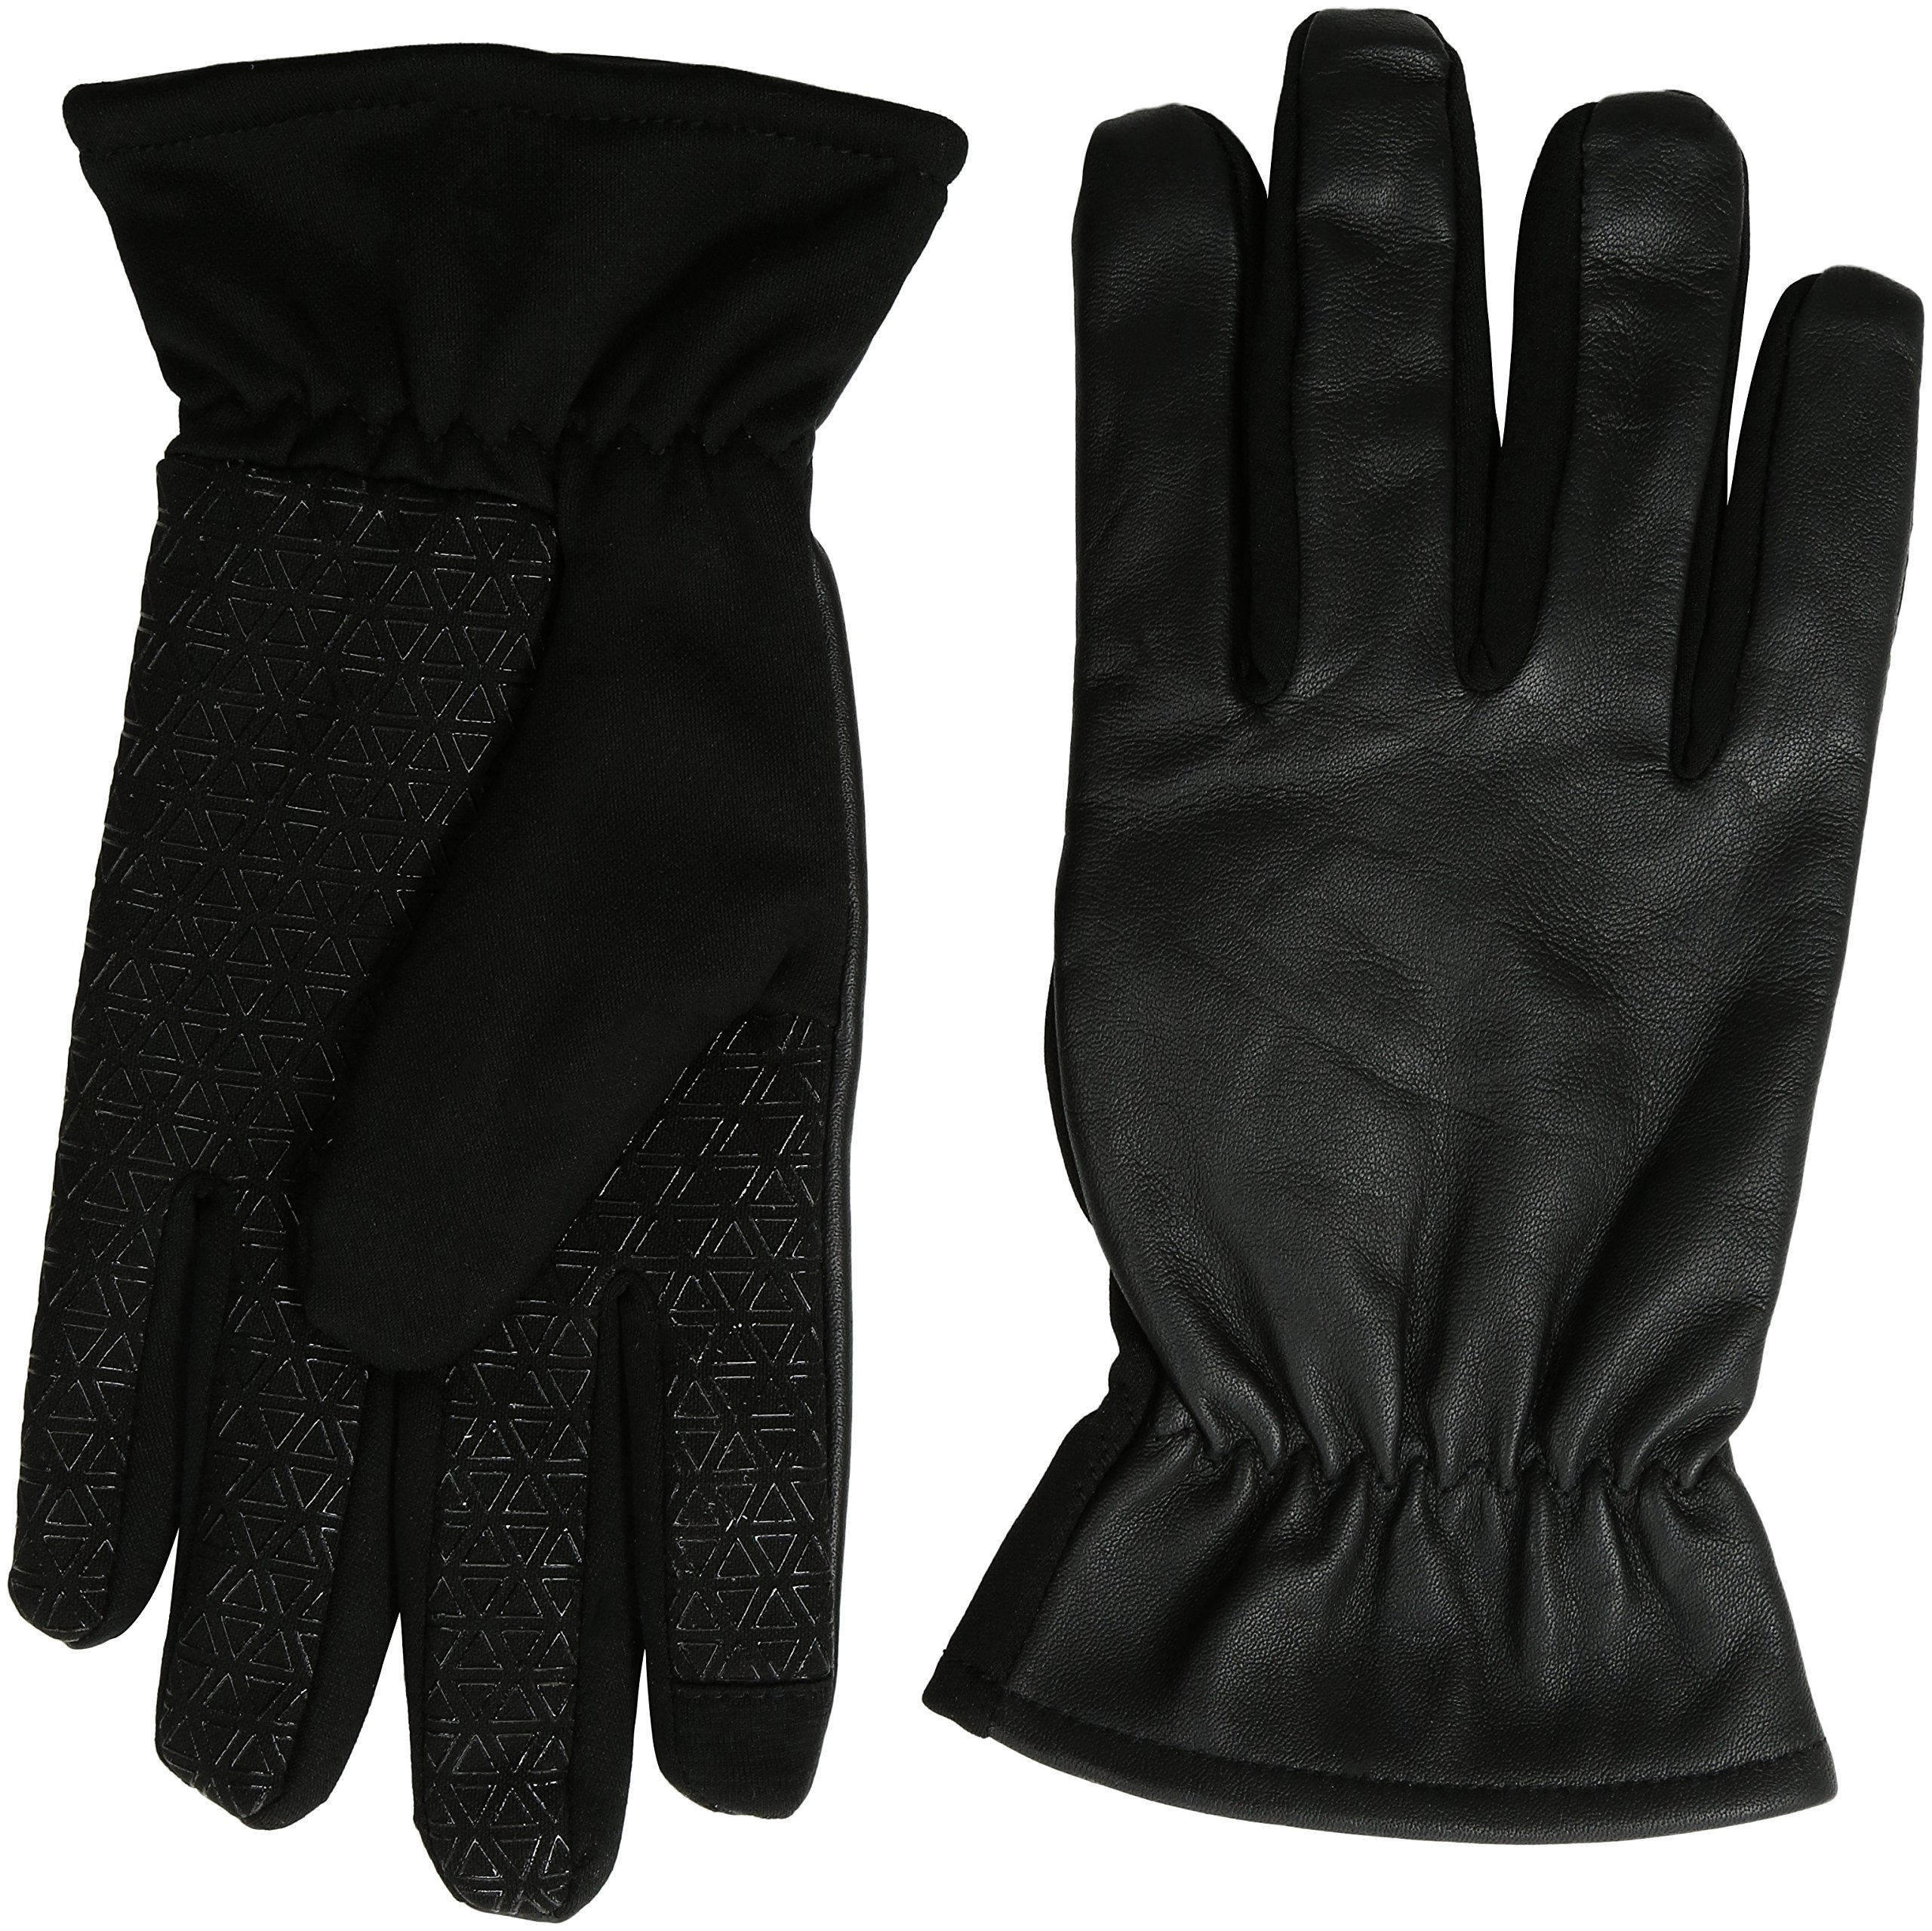 GII Men's Fine Leather and Softshell Touchscreen Gloves, Black, Large